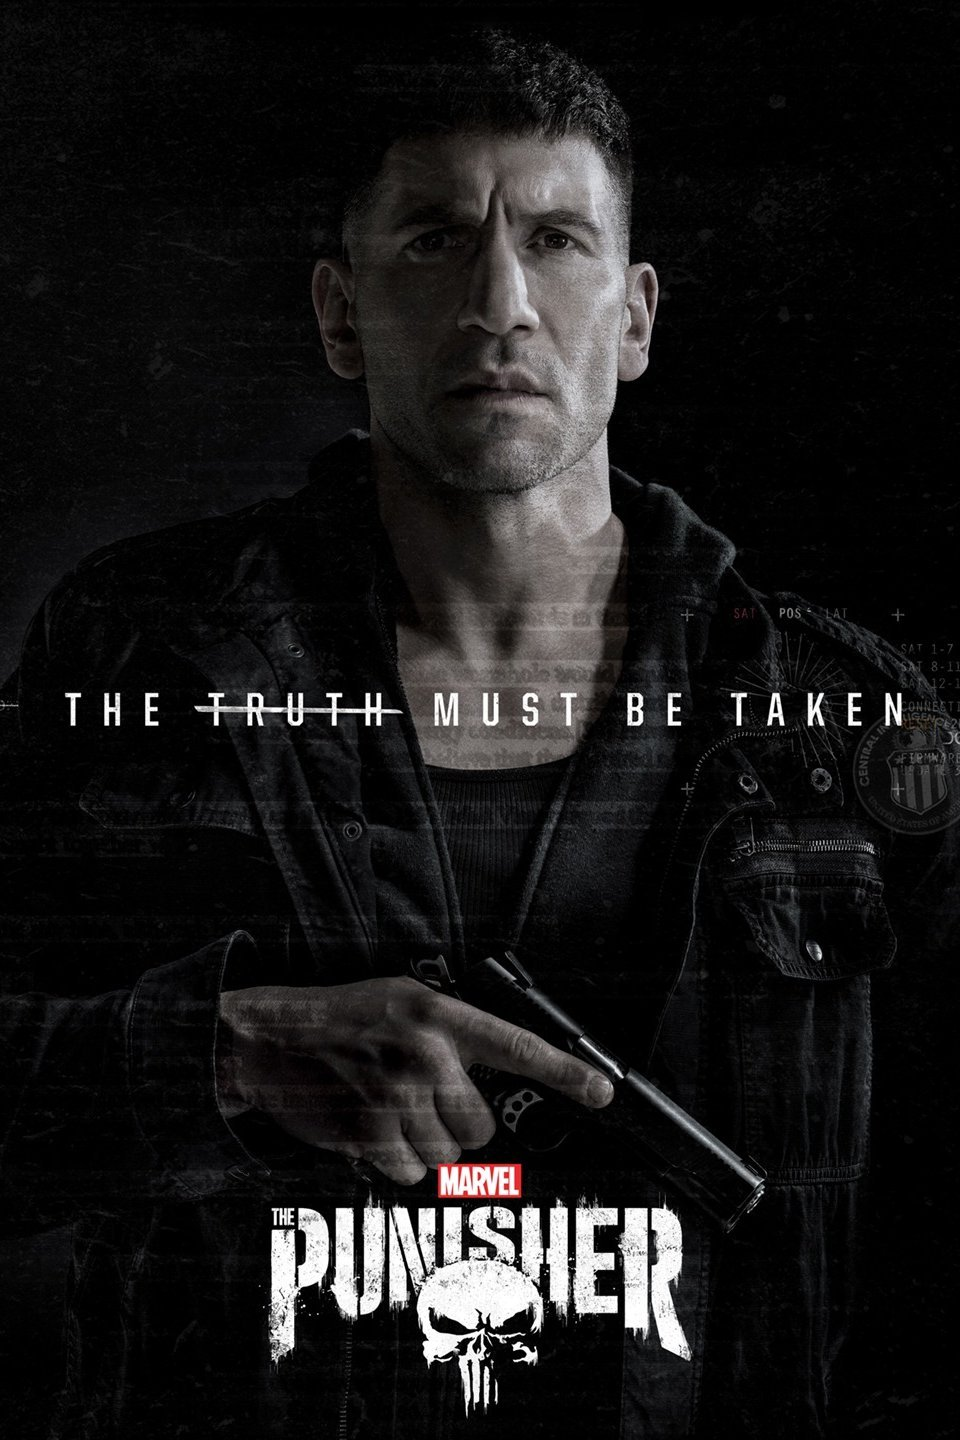 The Punisher Season 1 Complete Download 720p HEVC WEBRip